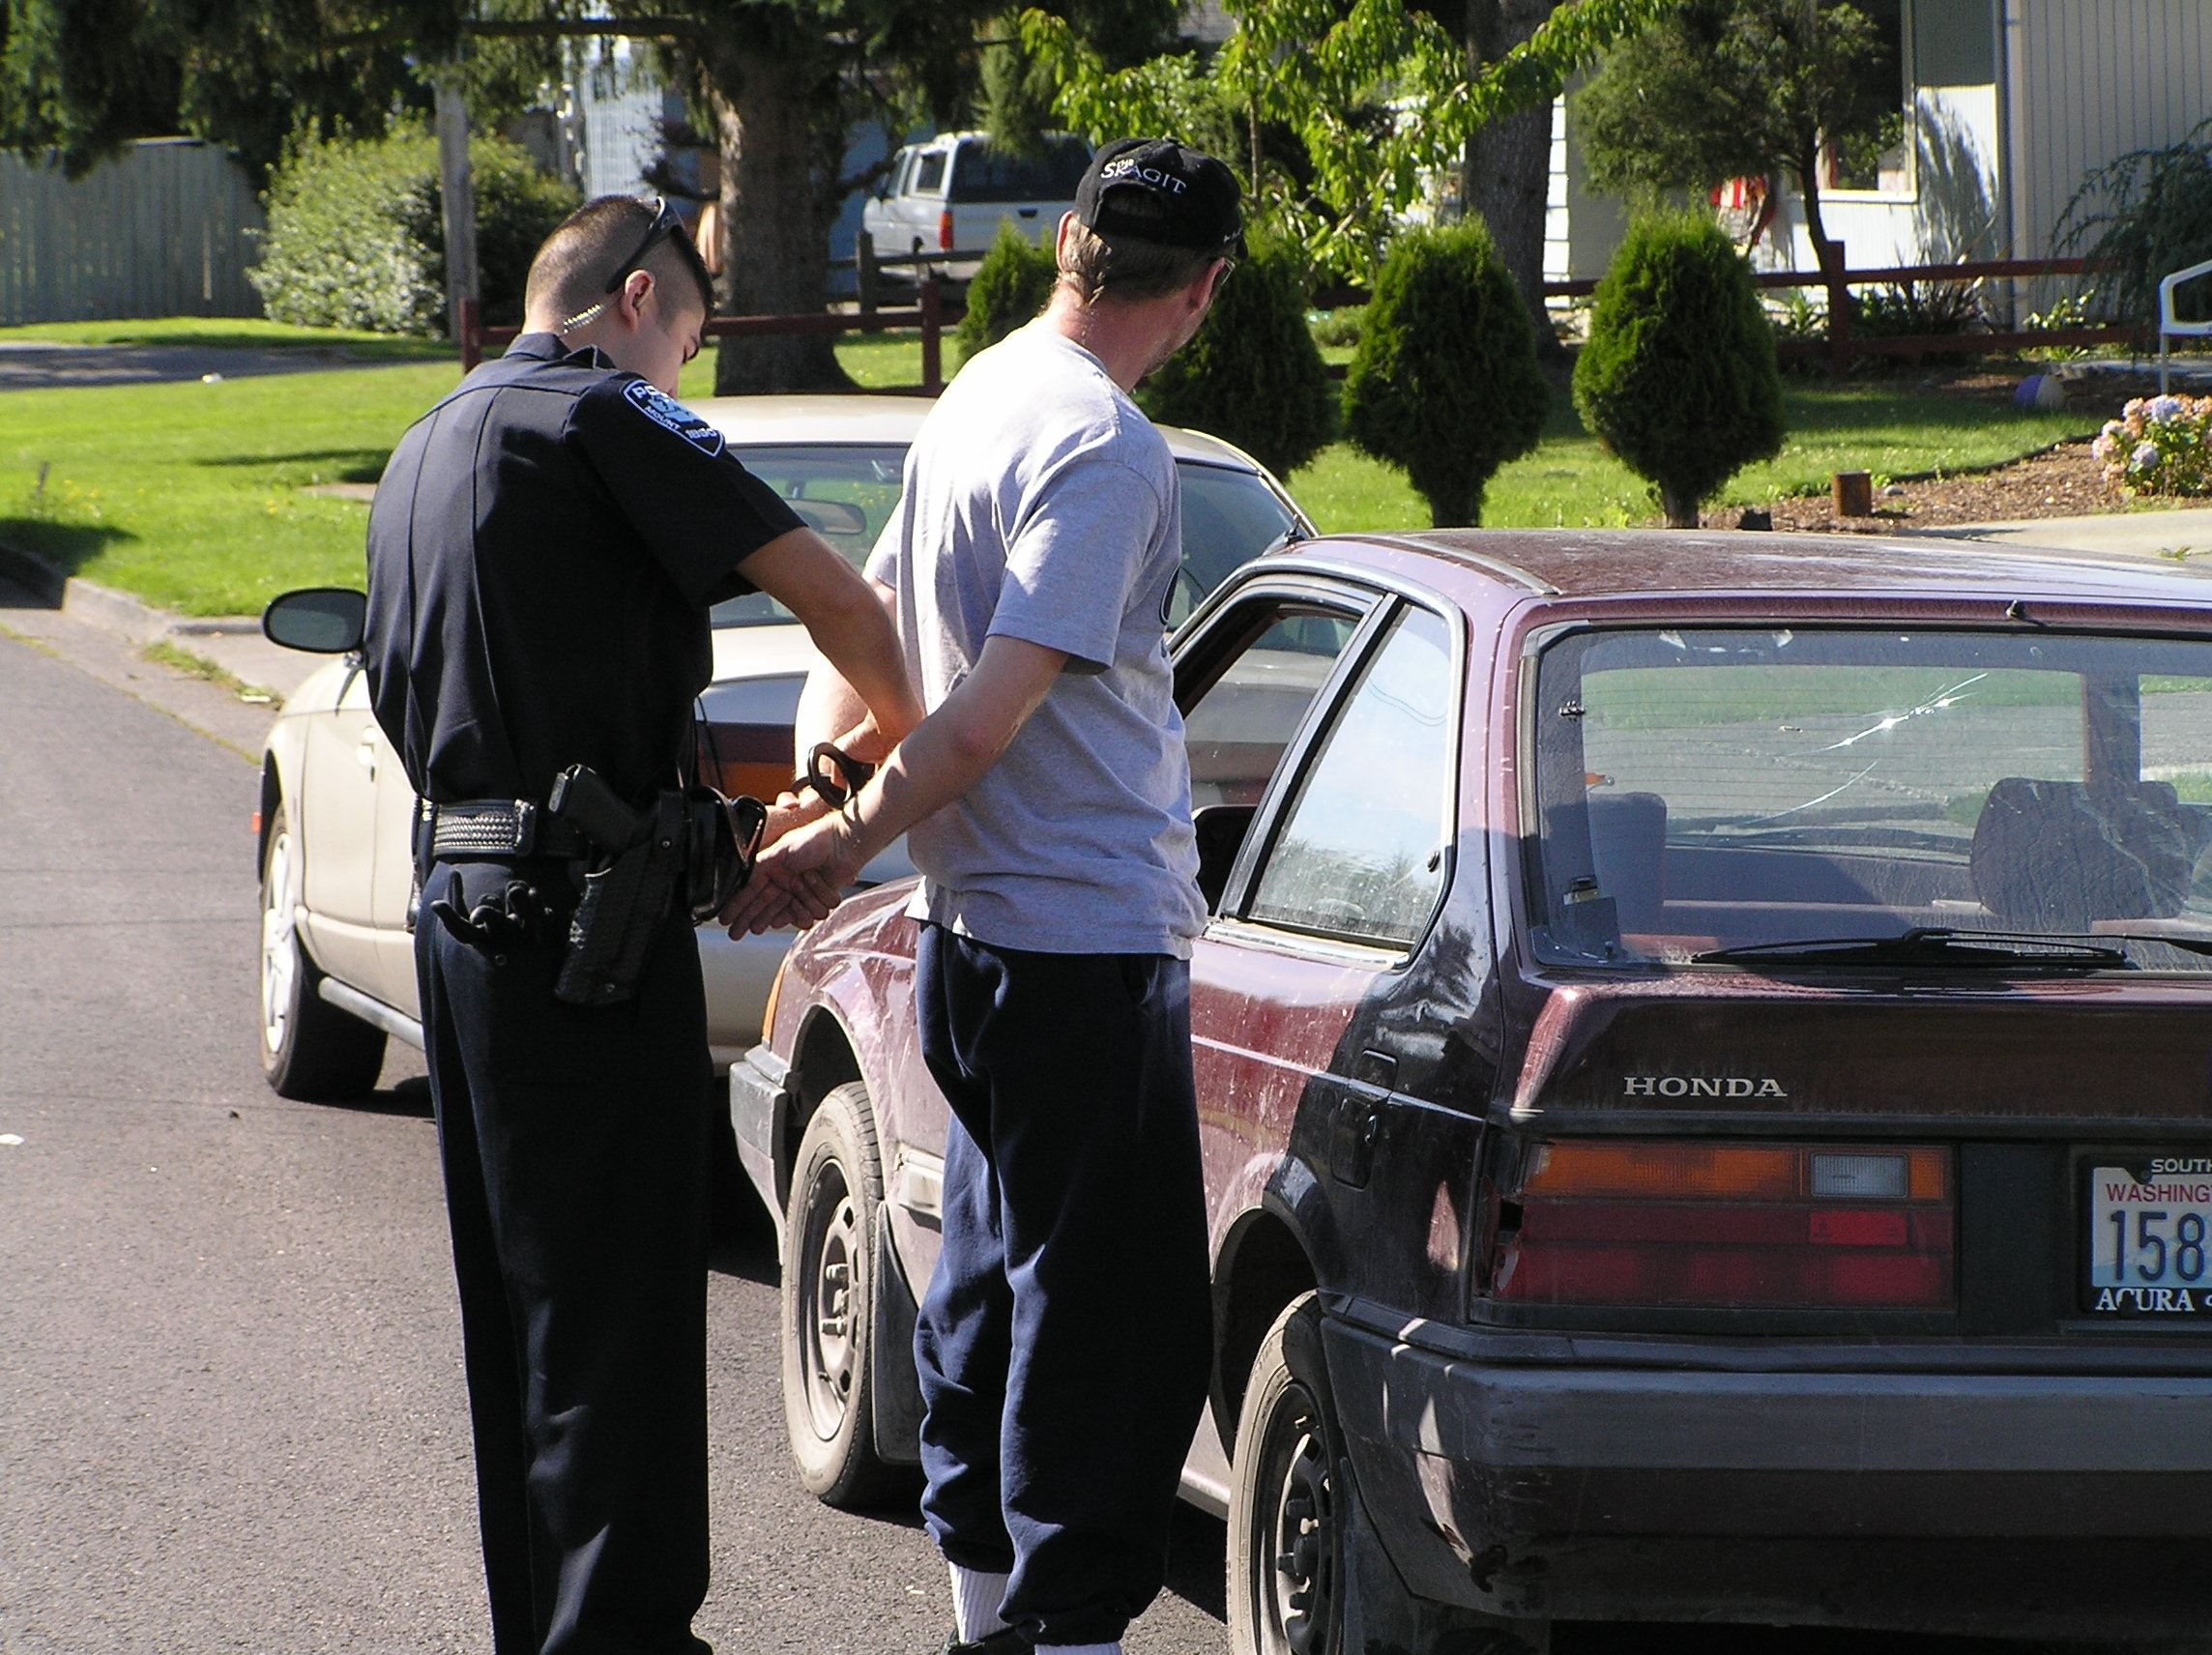 Serrano Making An Arrest